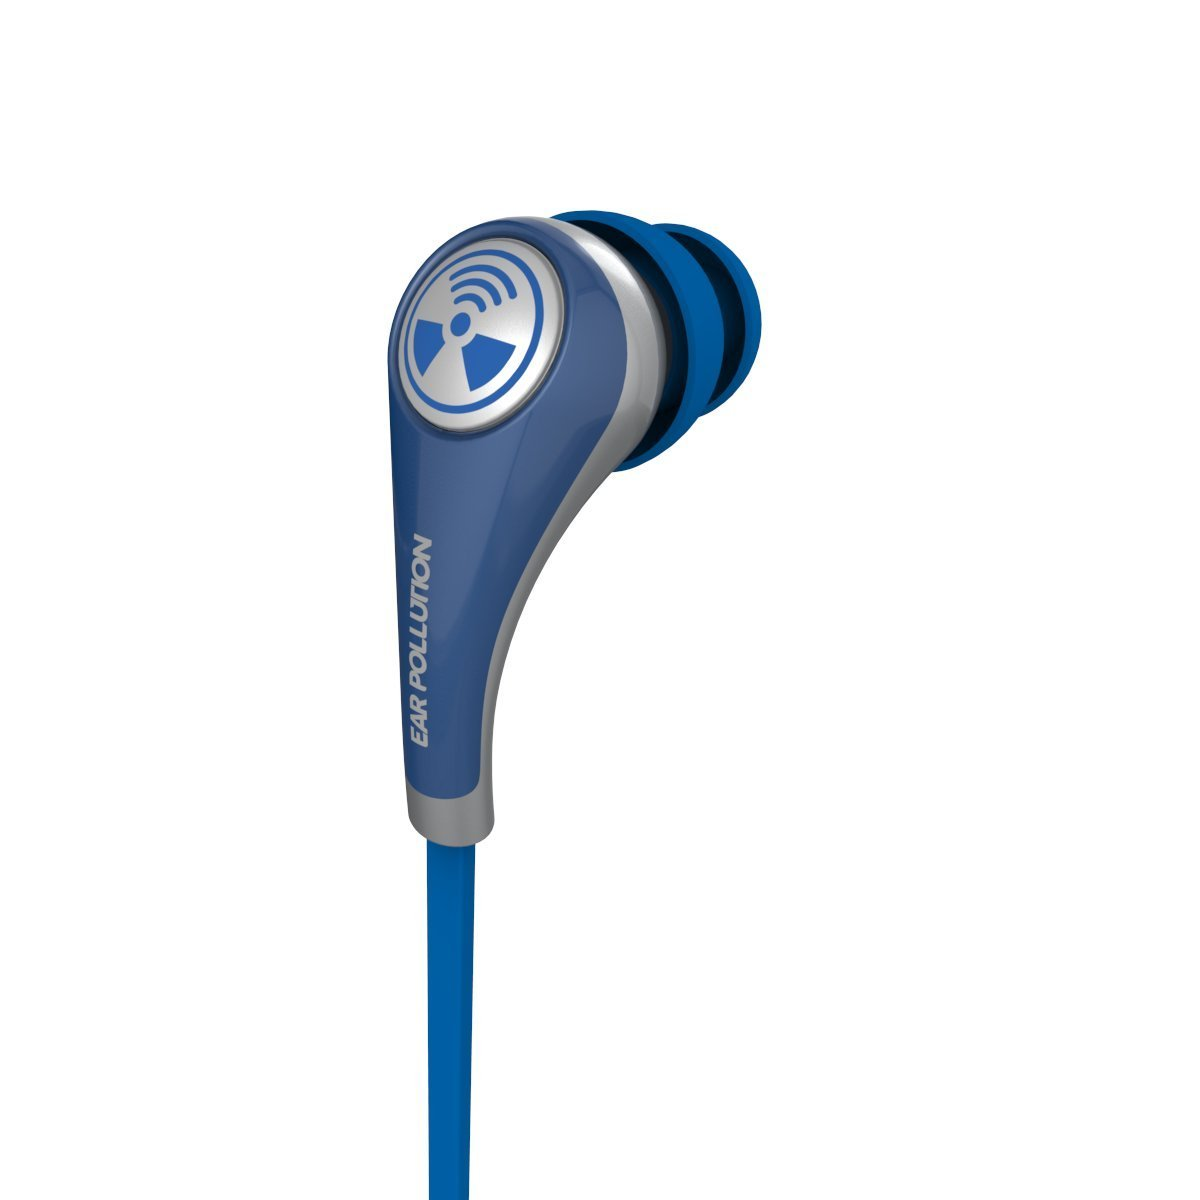 iFrogz Plugz Mobile with Mic Blue: Supreme Quality Stereo Headset & Hands-Free (κλήσεις & μουσική με Flat καλώδιο)